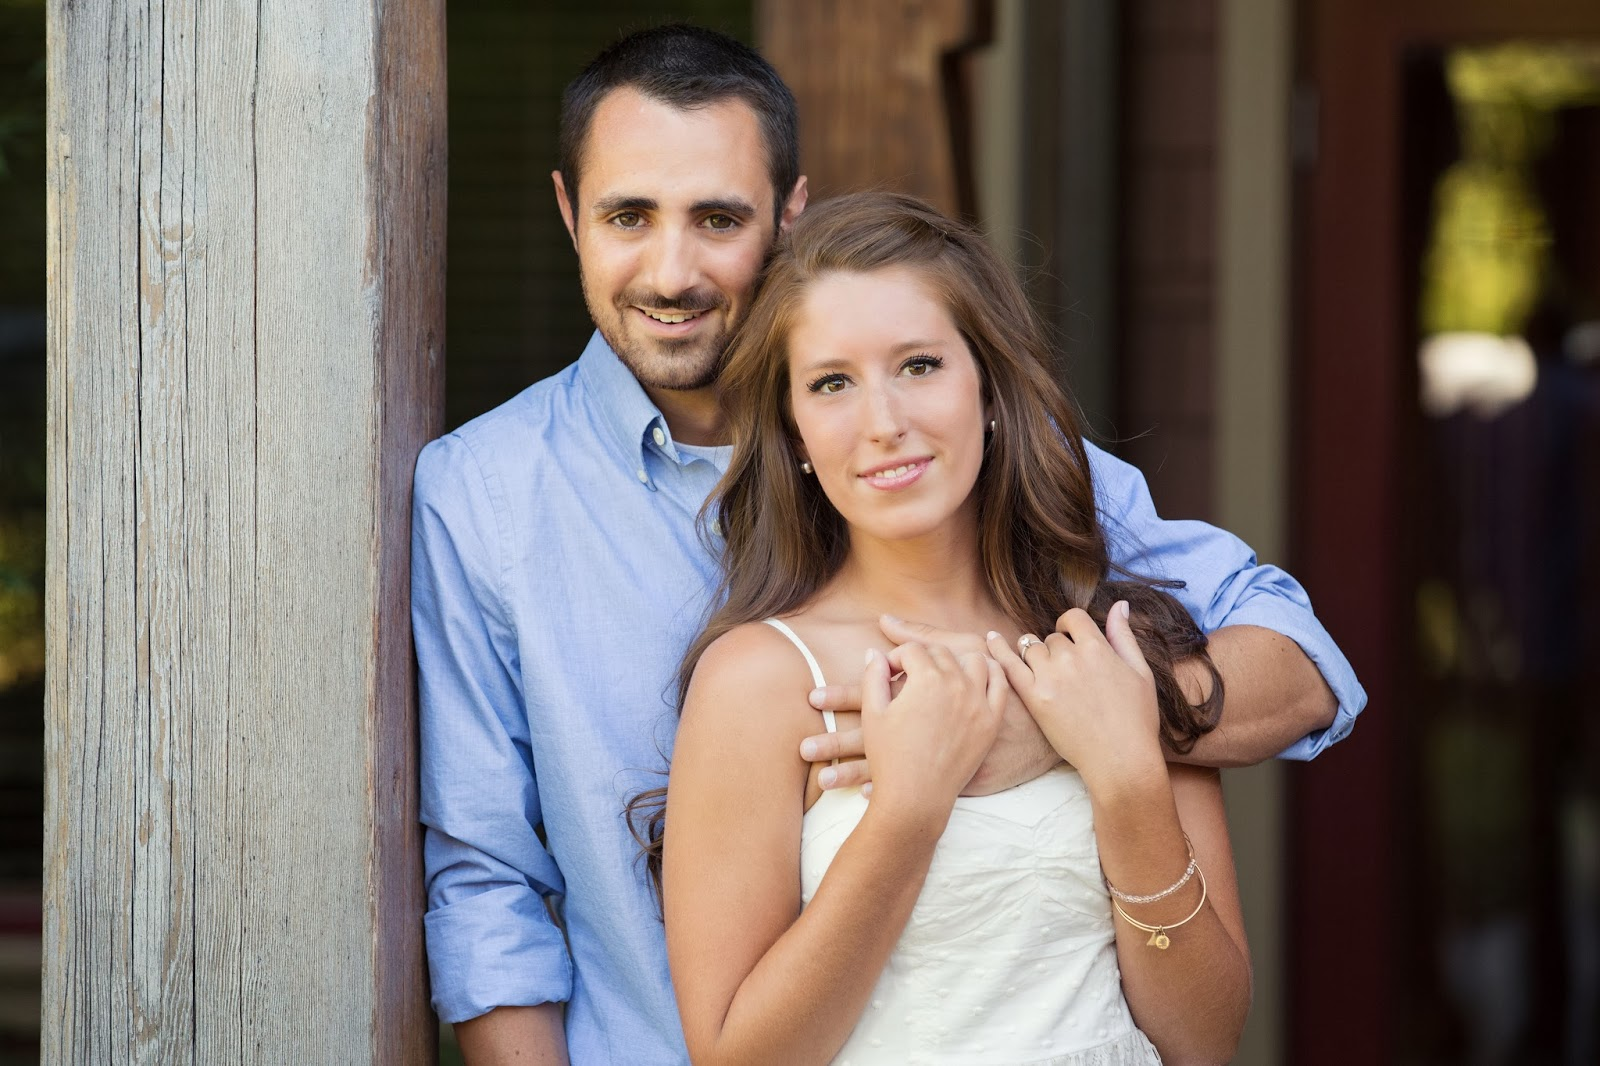 Michael and Liana to wed at the Woodmark this summer - Kent Buttars, Seattle Wedding Officiant